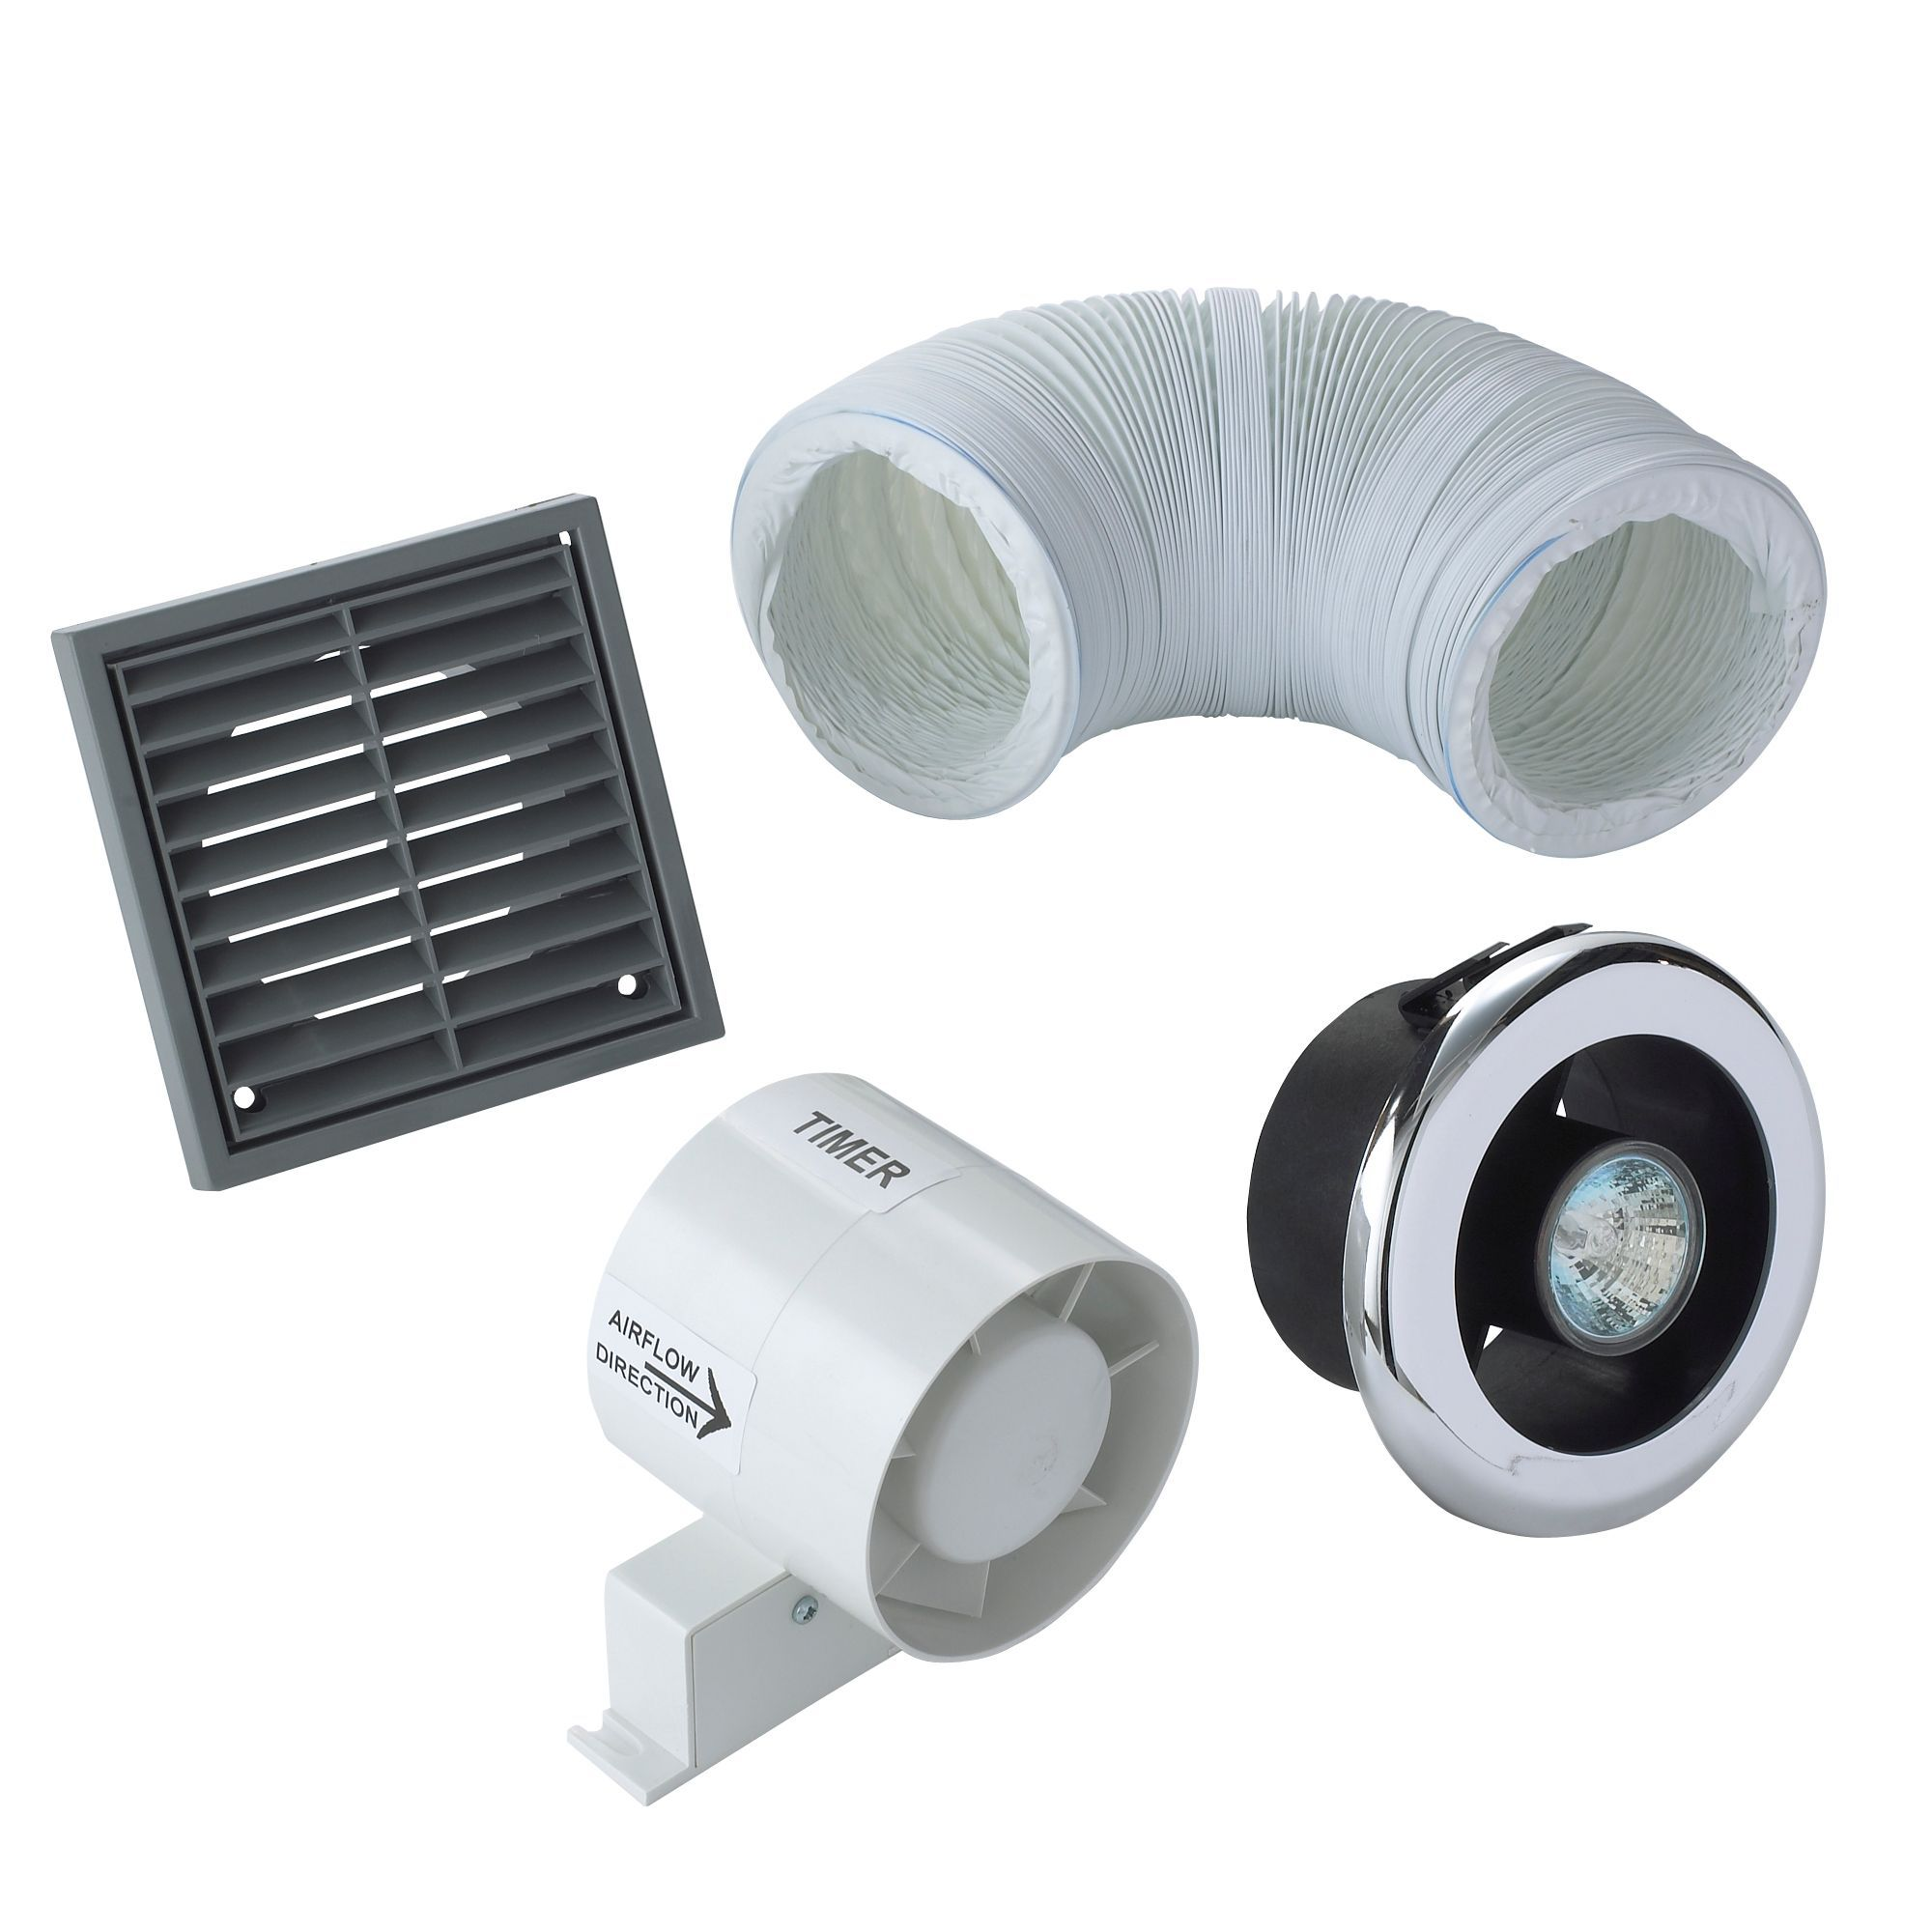 Manrose Showerlight Bathroom Extractor Fan Kit With Timer 98 Mm